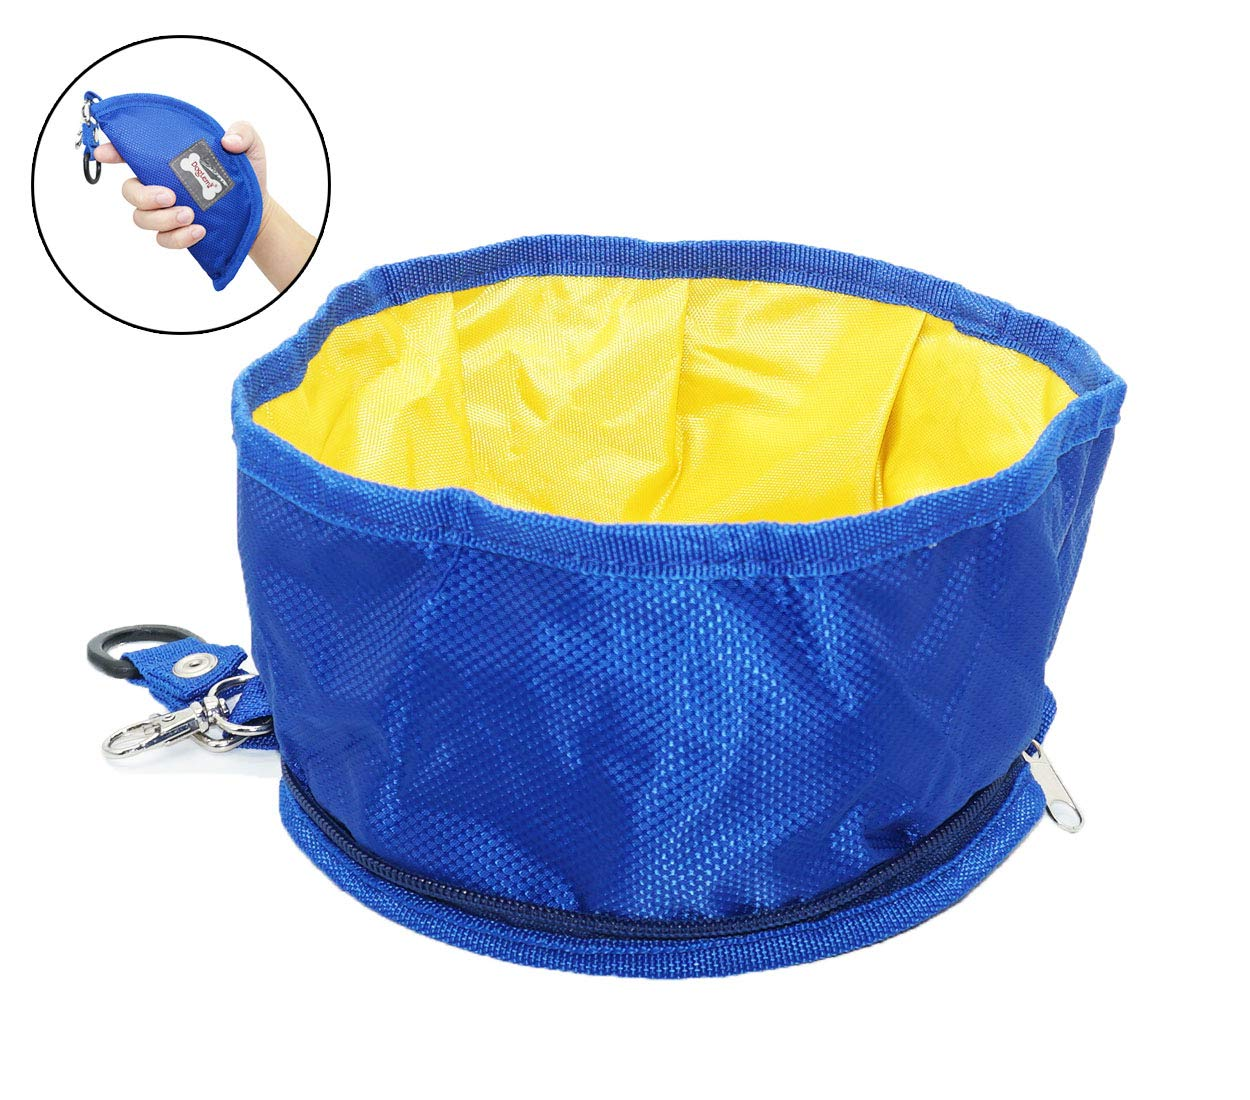 Portable Dog Bowl Travel for Food and Water,Large Collapsible Dog Bowl 38ounce Water Cup Dish,Foldable Pet Bowl Suitable for  Mountain Climbing Hiking Camping(Blue)